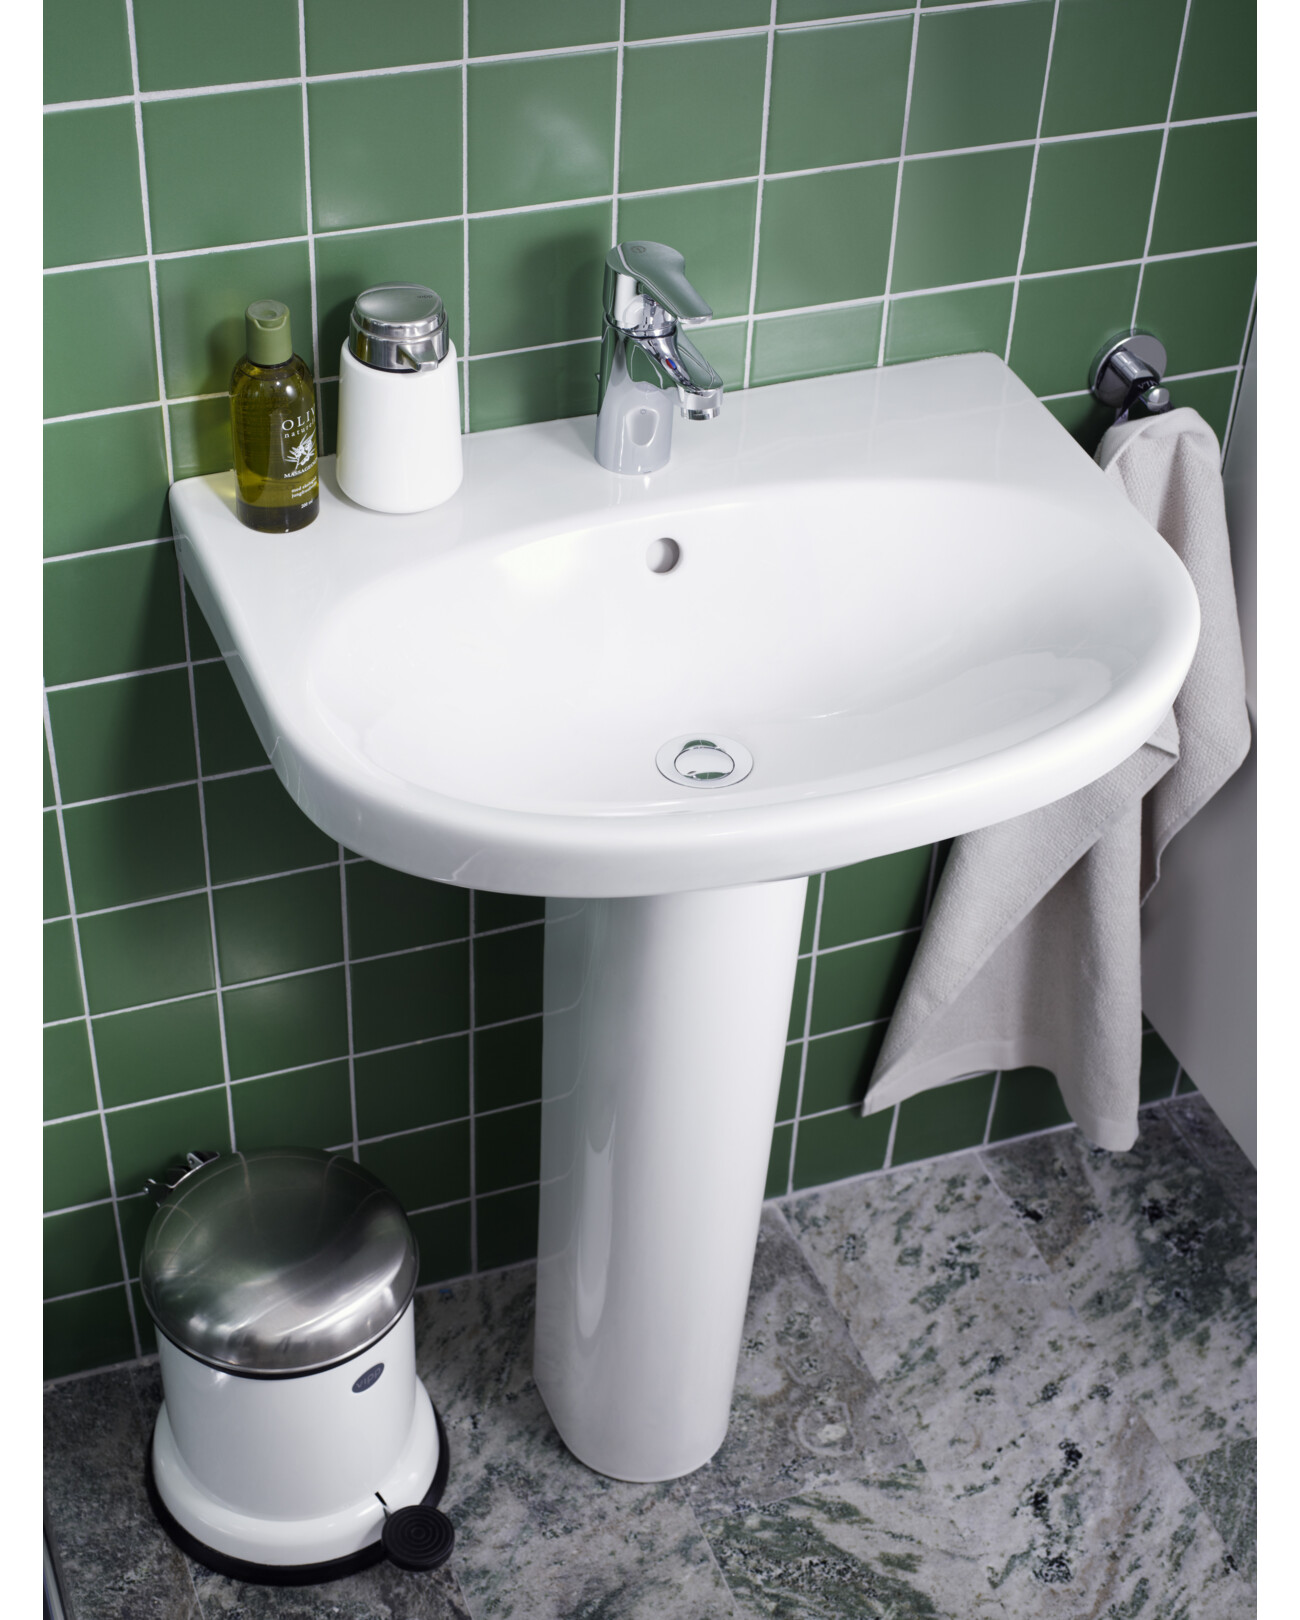 Bathroom sinks YS1 5565.Without faucet hole